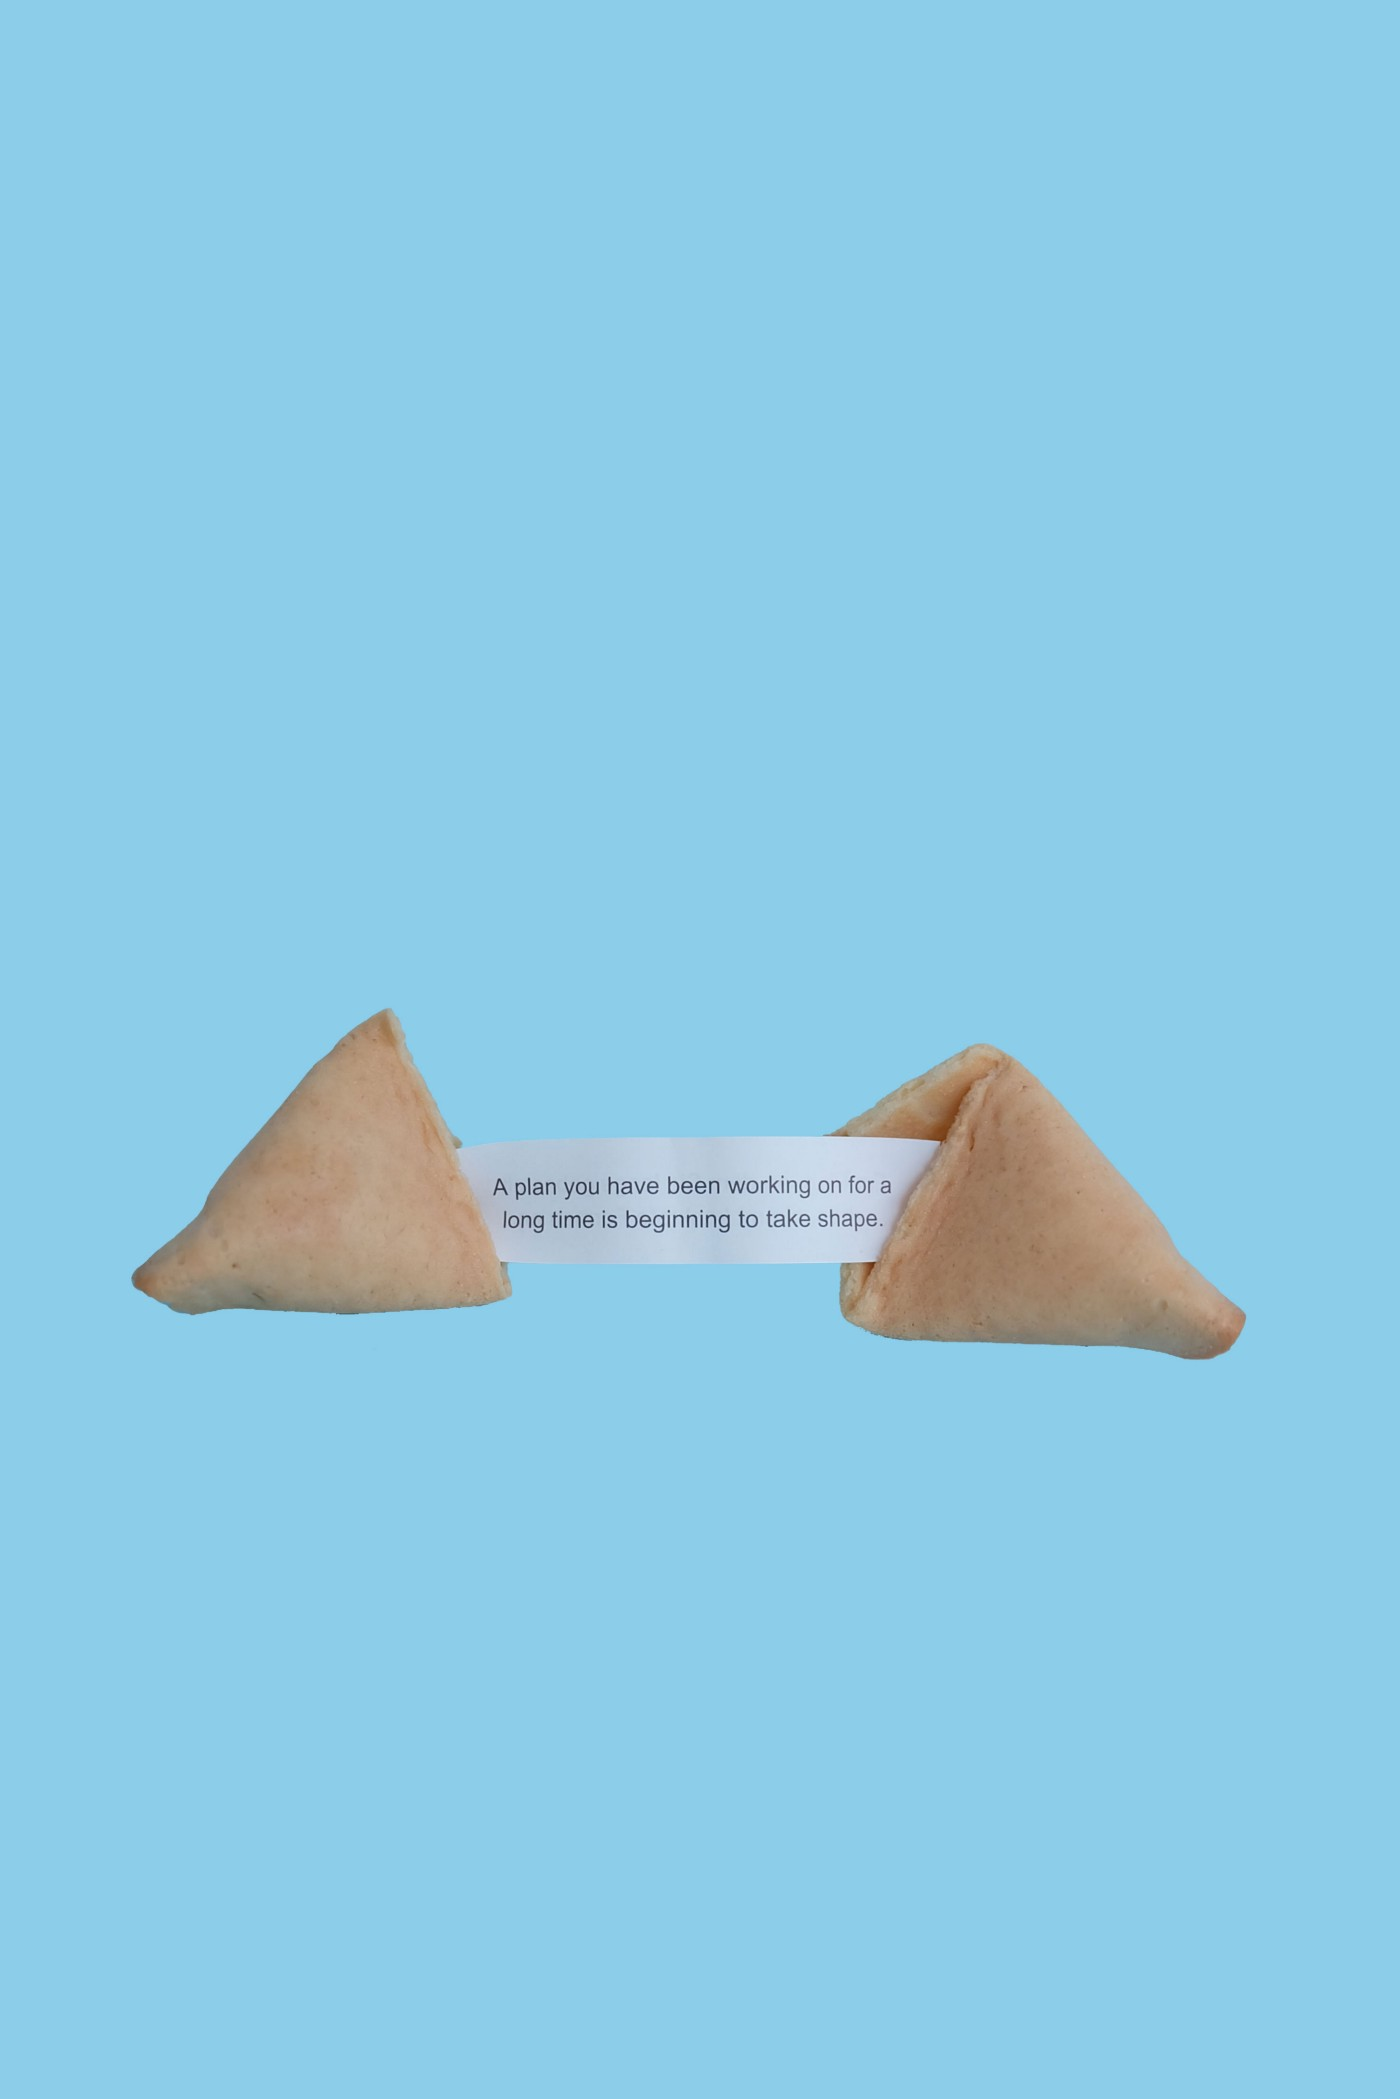 fortune cookie saying that your plan is taking shape